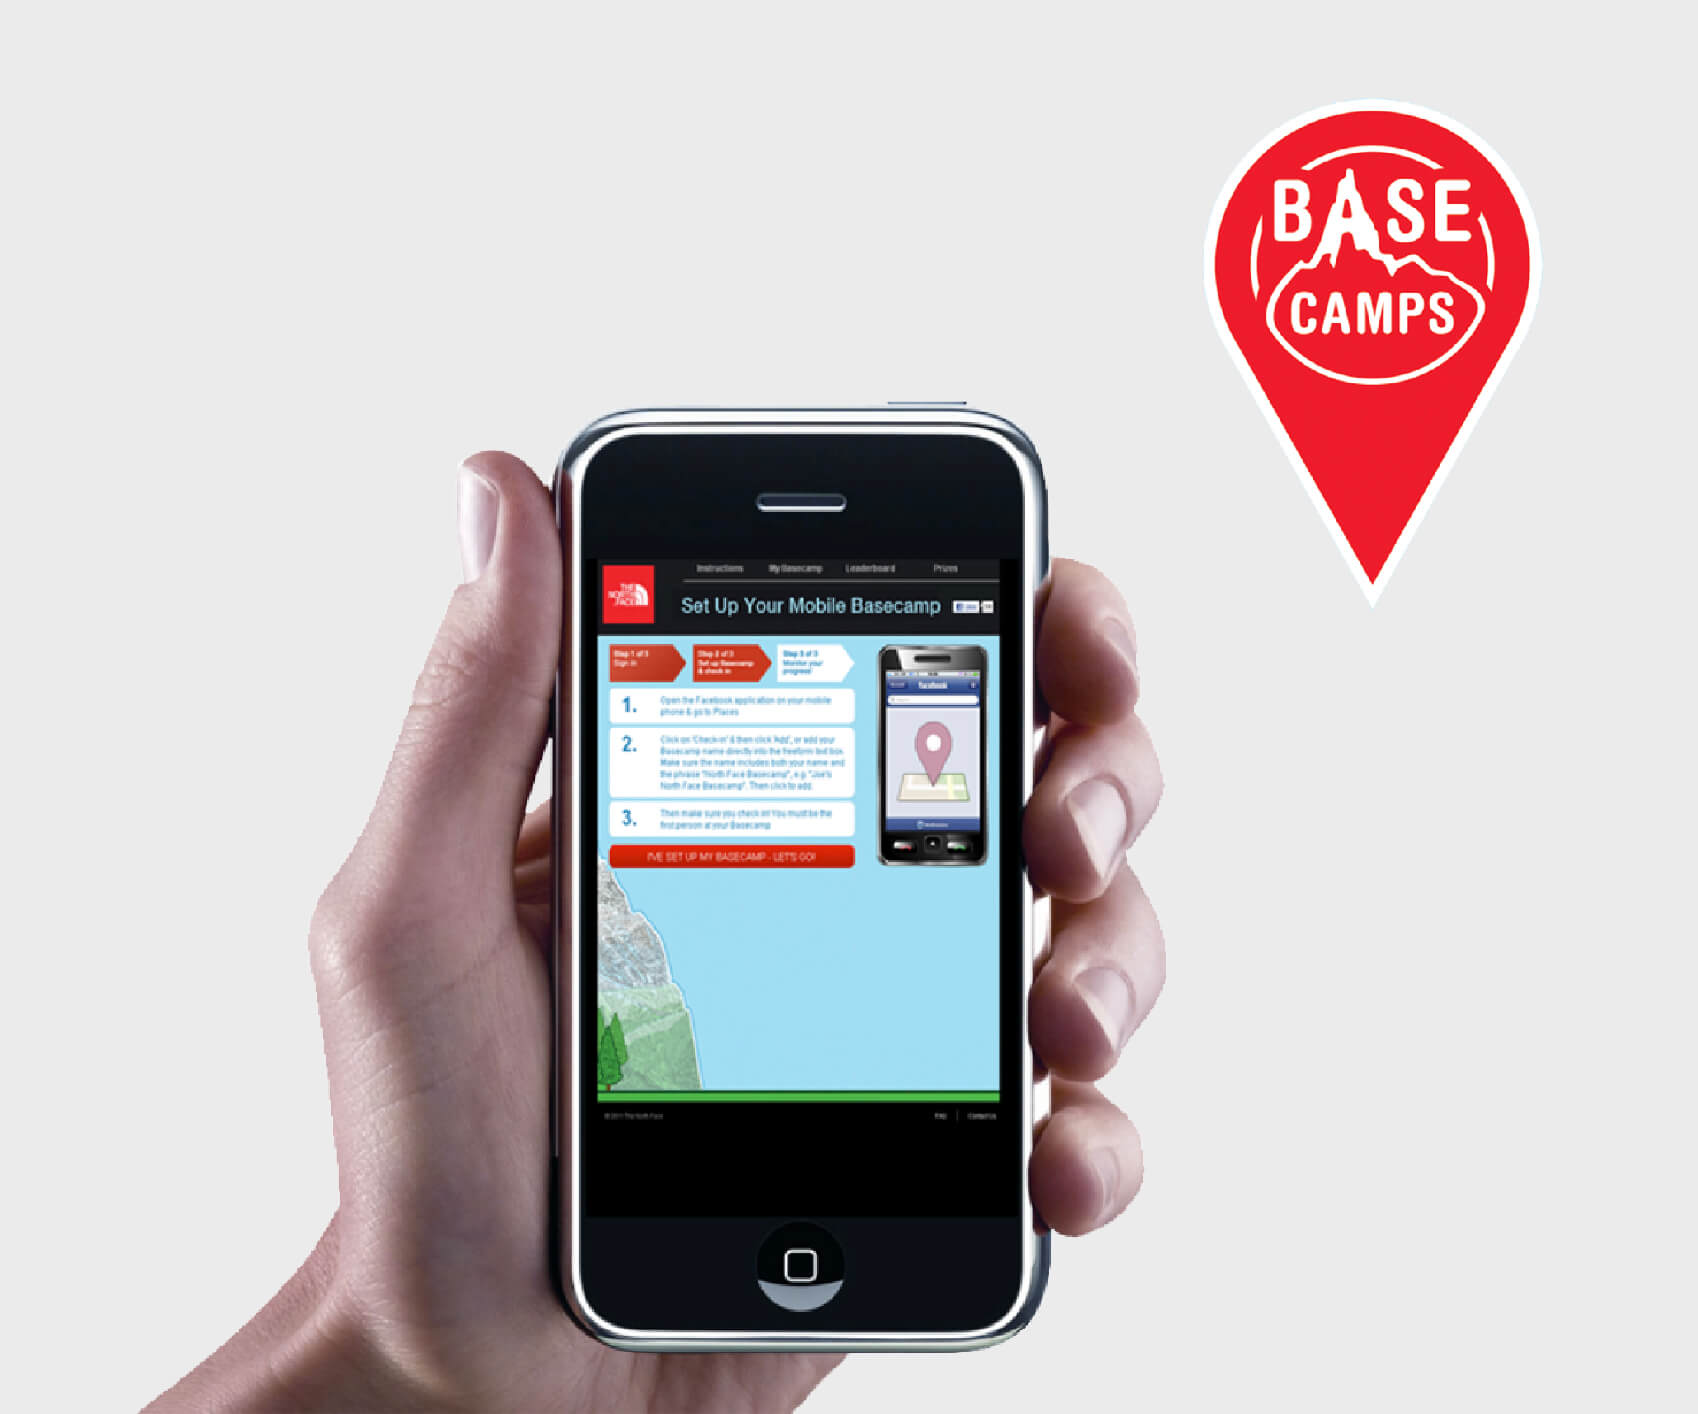 BASECAMPS-PHONE